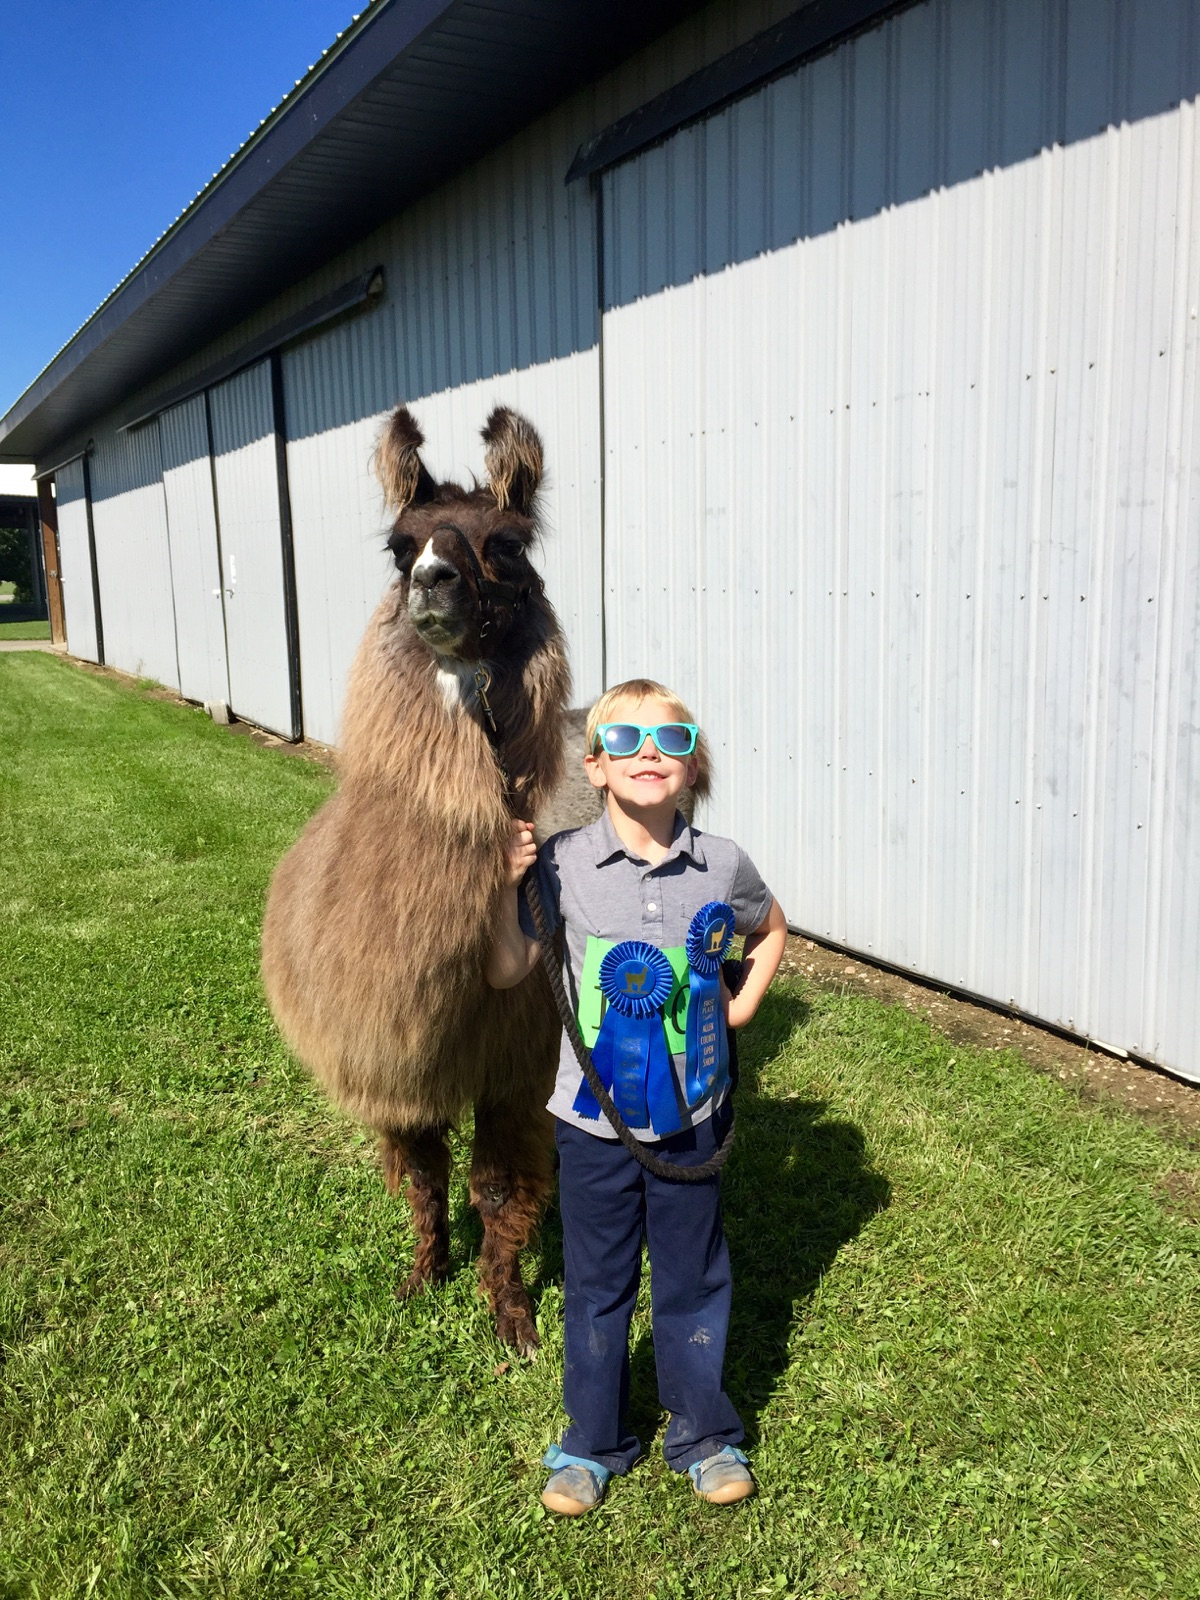 You'll see a variety of animals being shown at the Allen County Fair, including llamas!